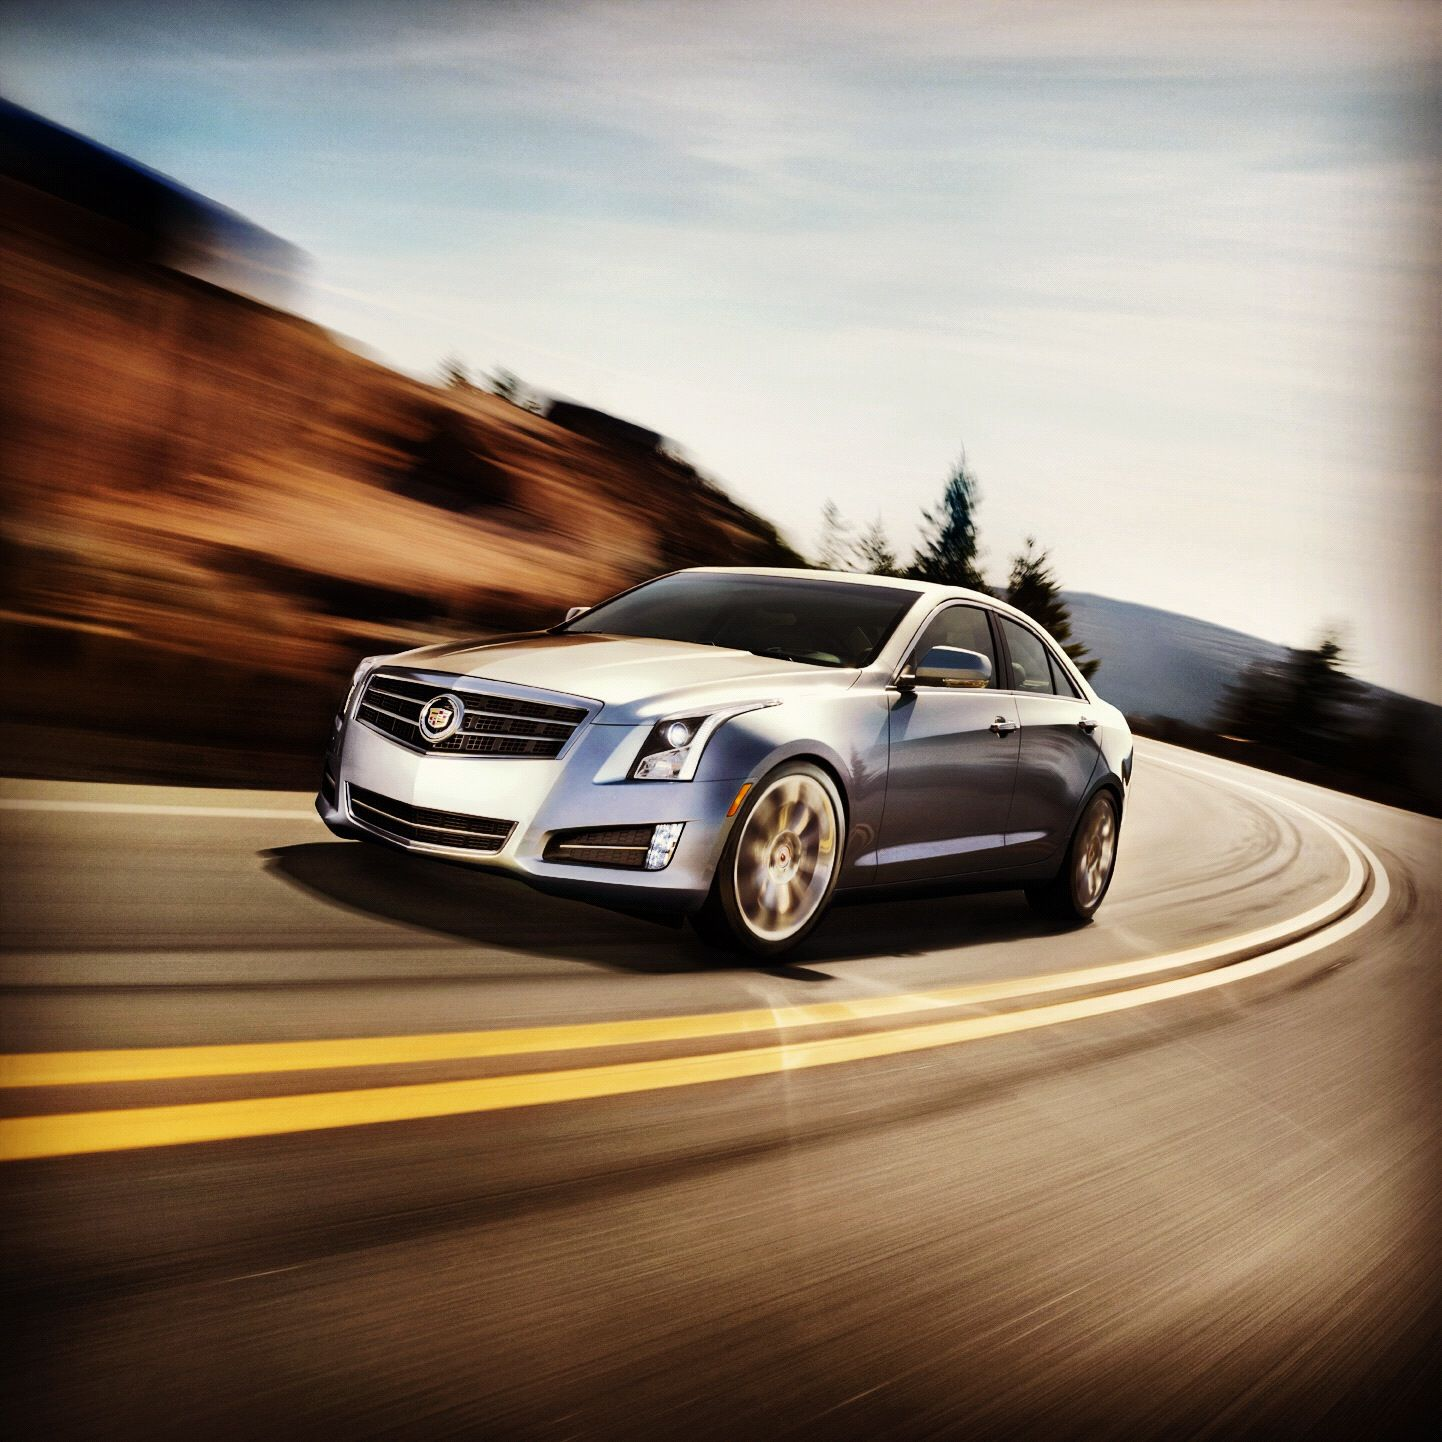 Buick Lease Deal: The All-new #Cadillac #ATS